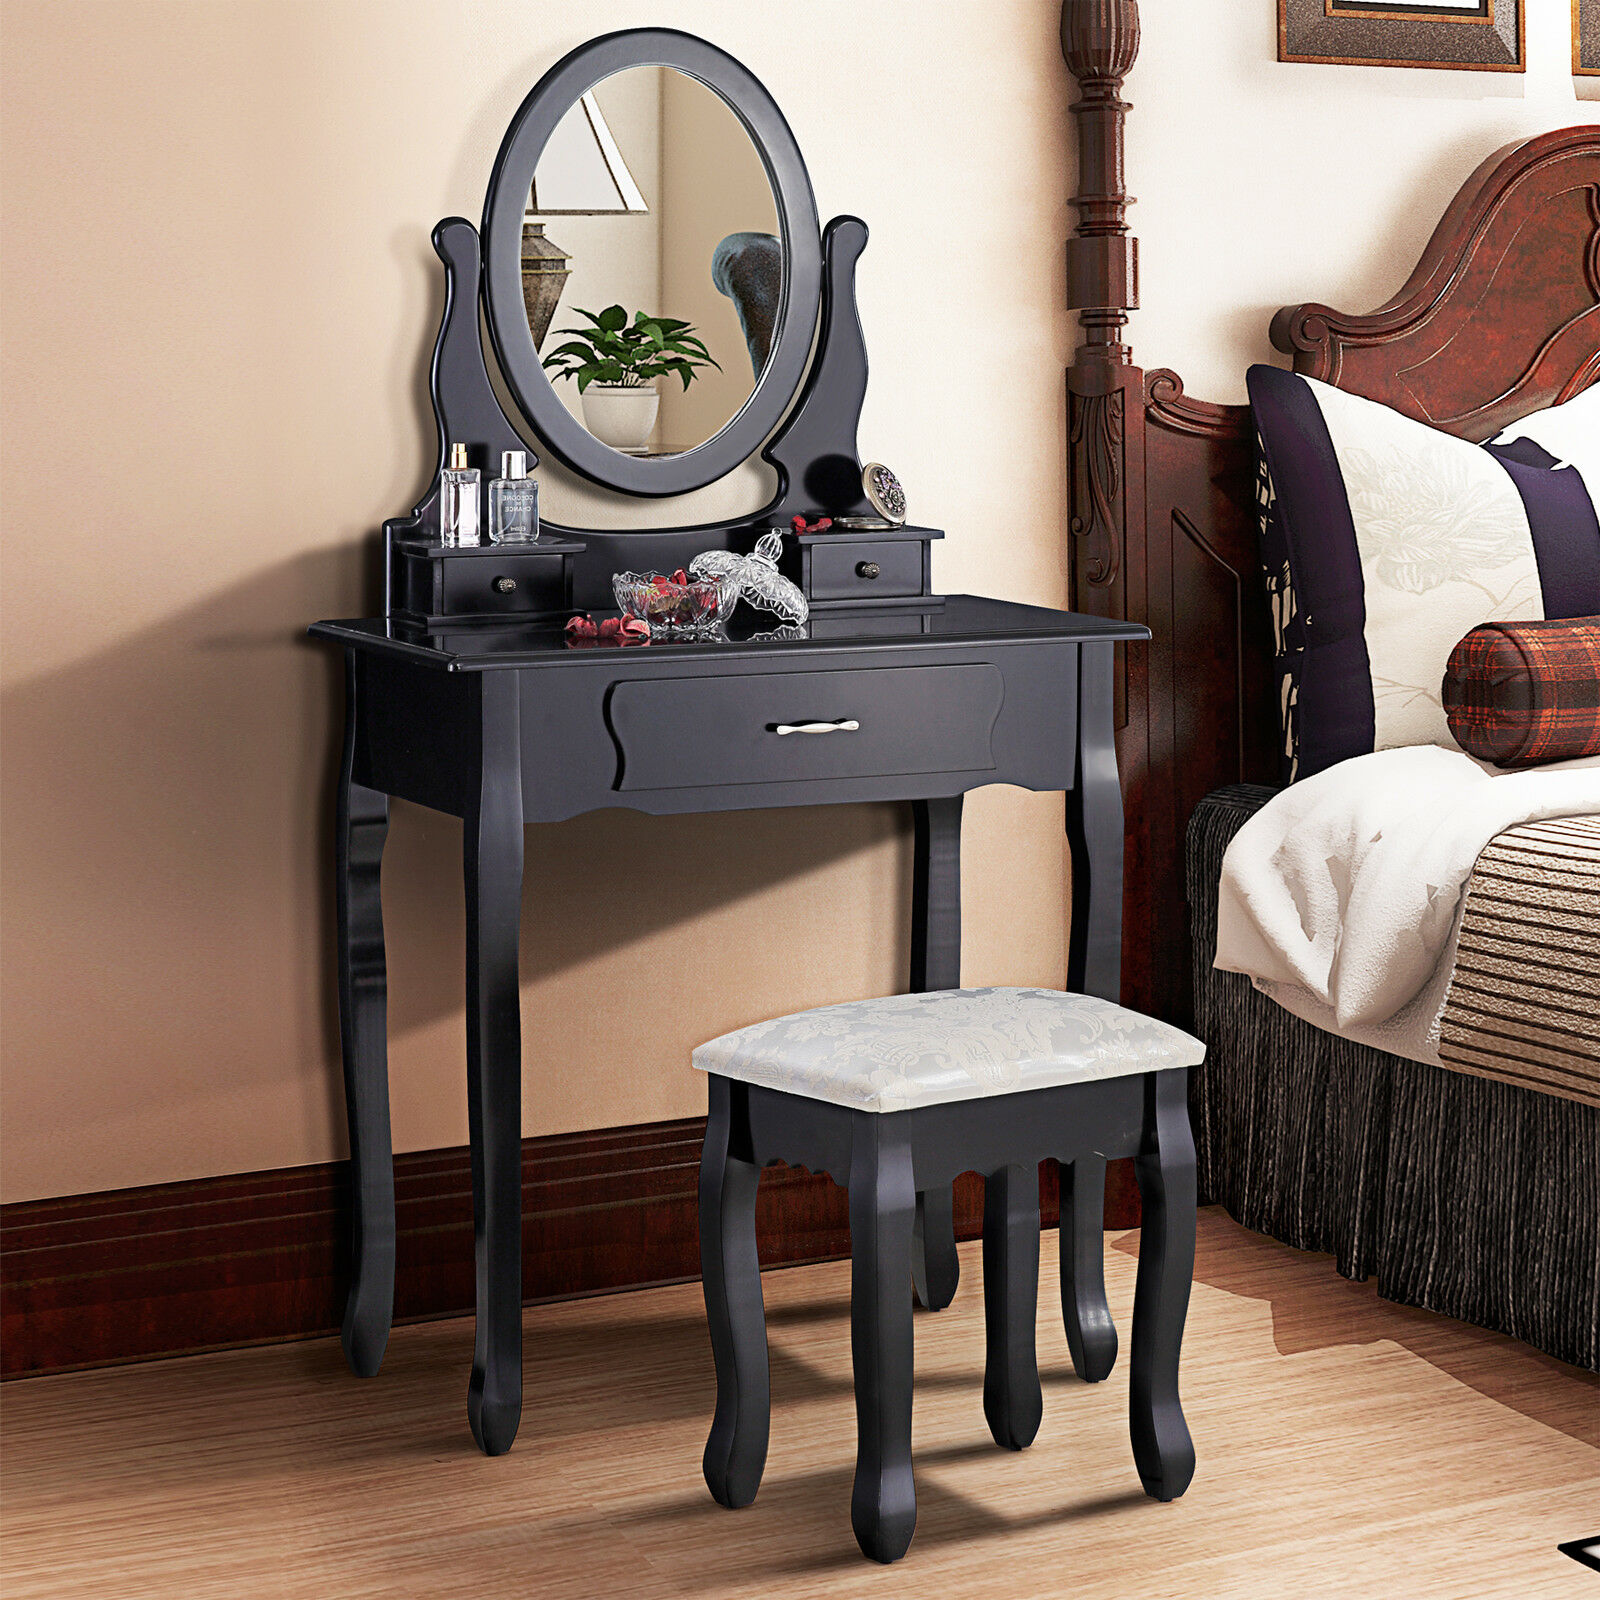 Retro luxury dressing table black makeup desk with stool for Black makeup table with mirror